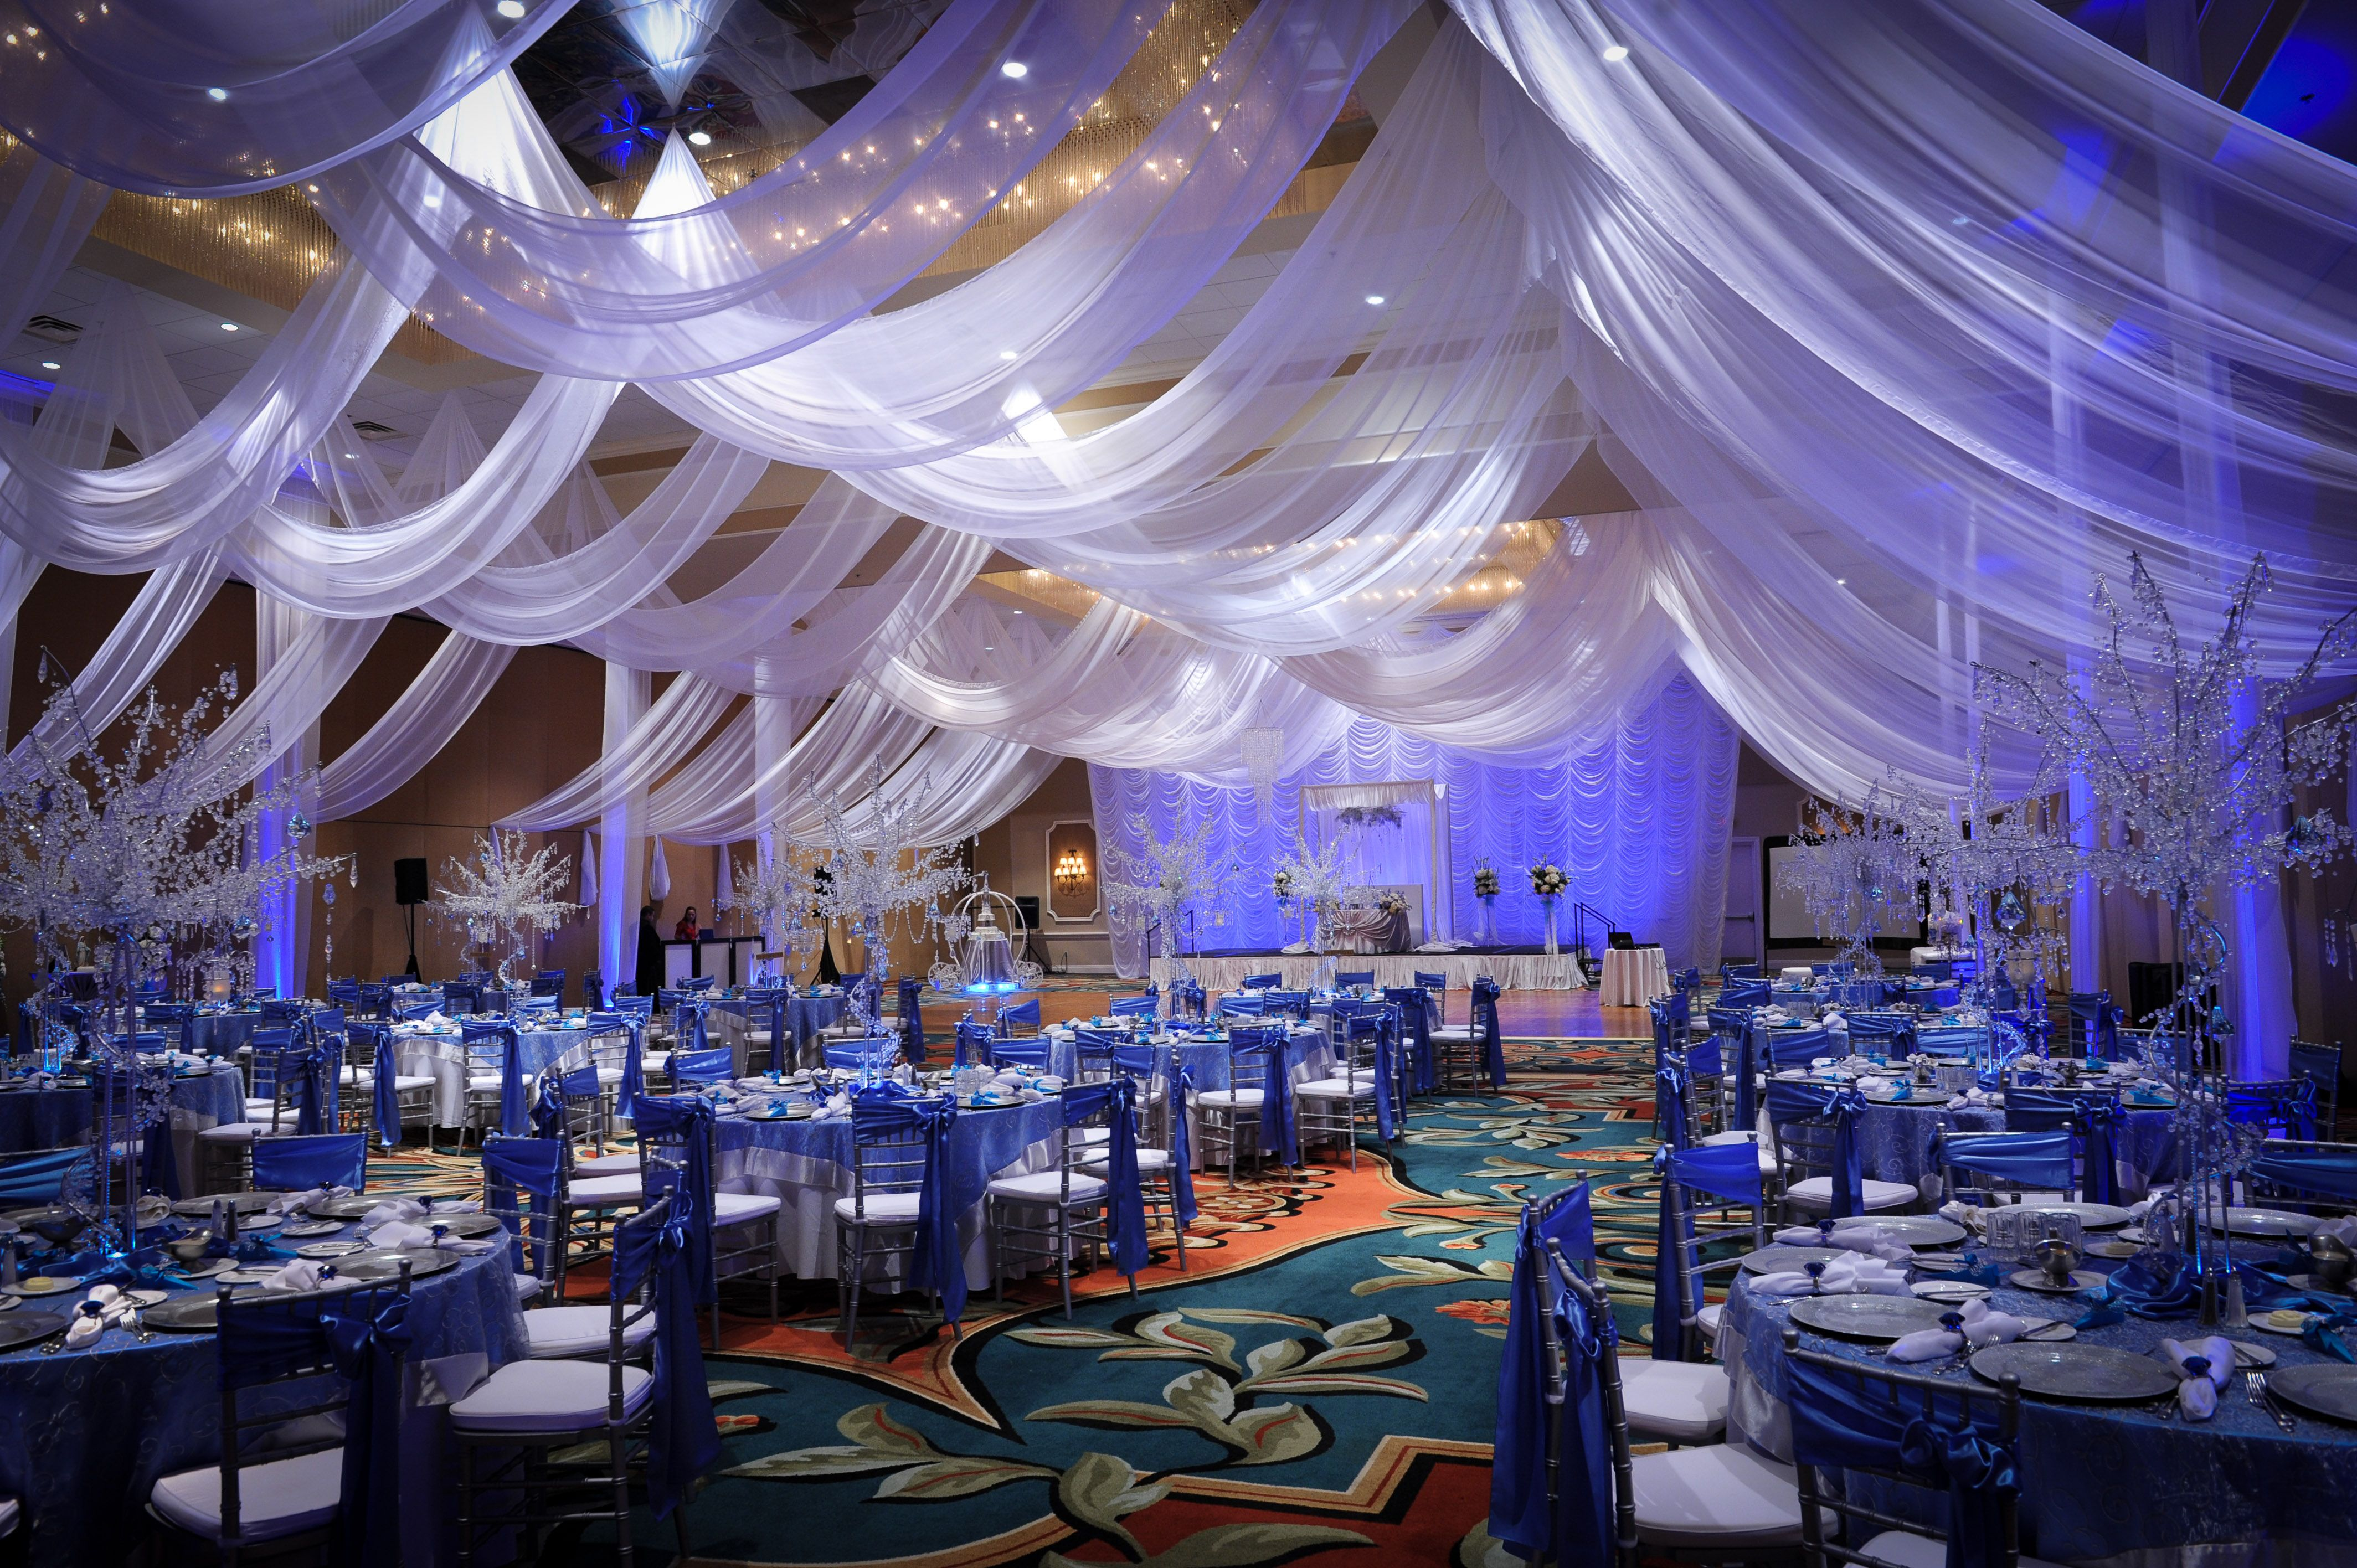 Pin by Brindille Banquet Hall on Decorations  Pinterest  Wedding